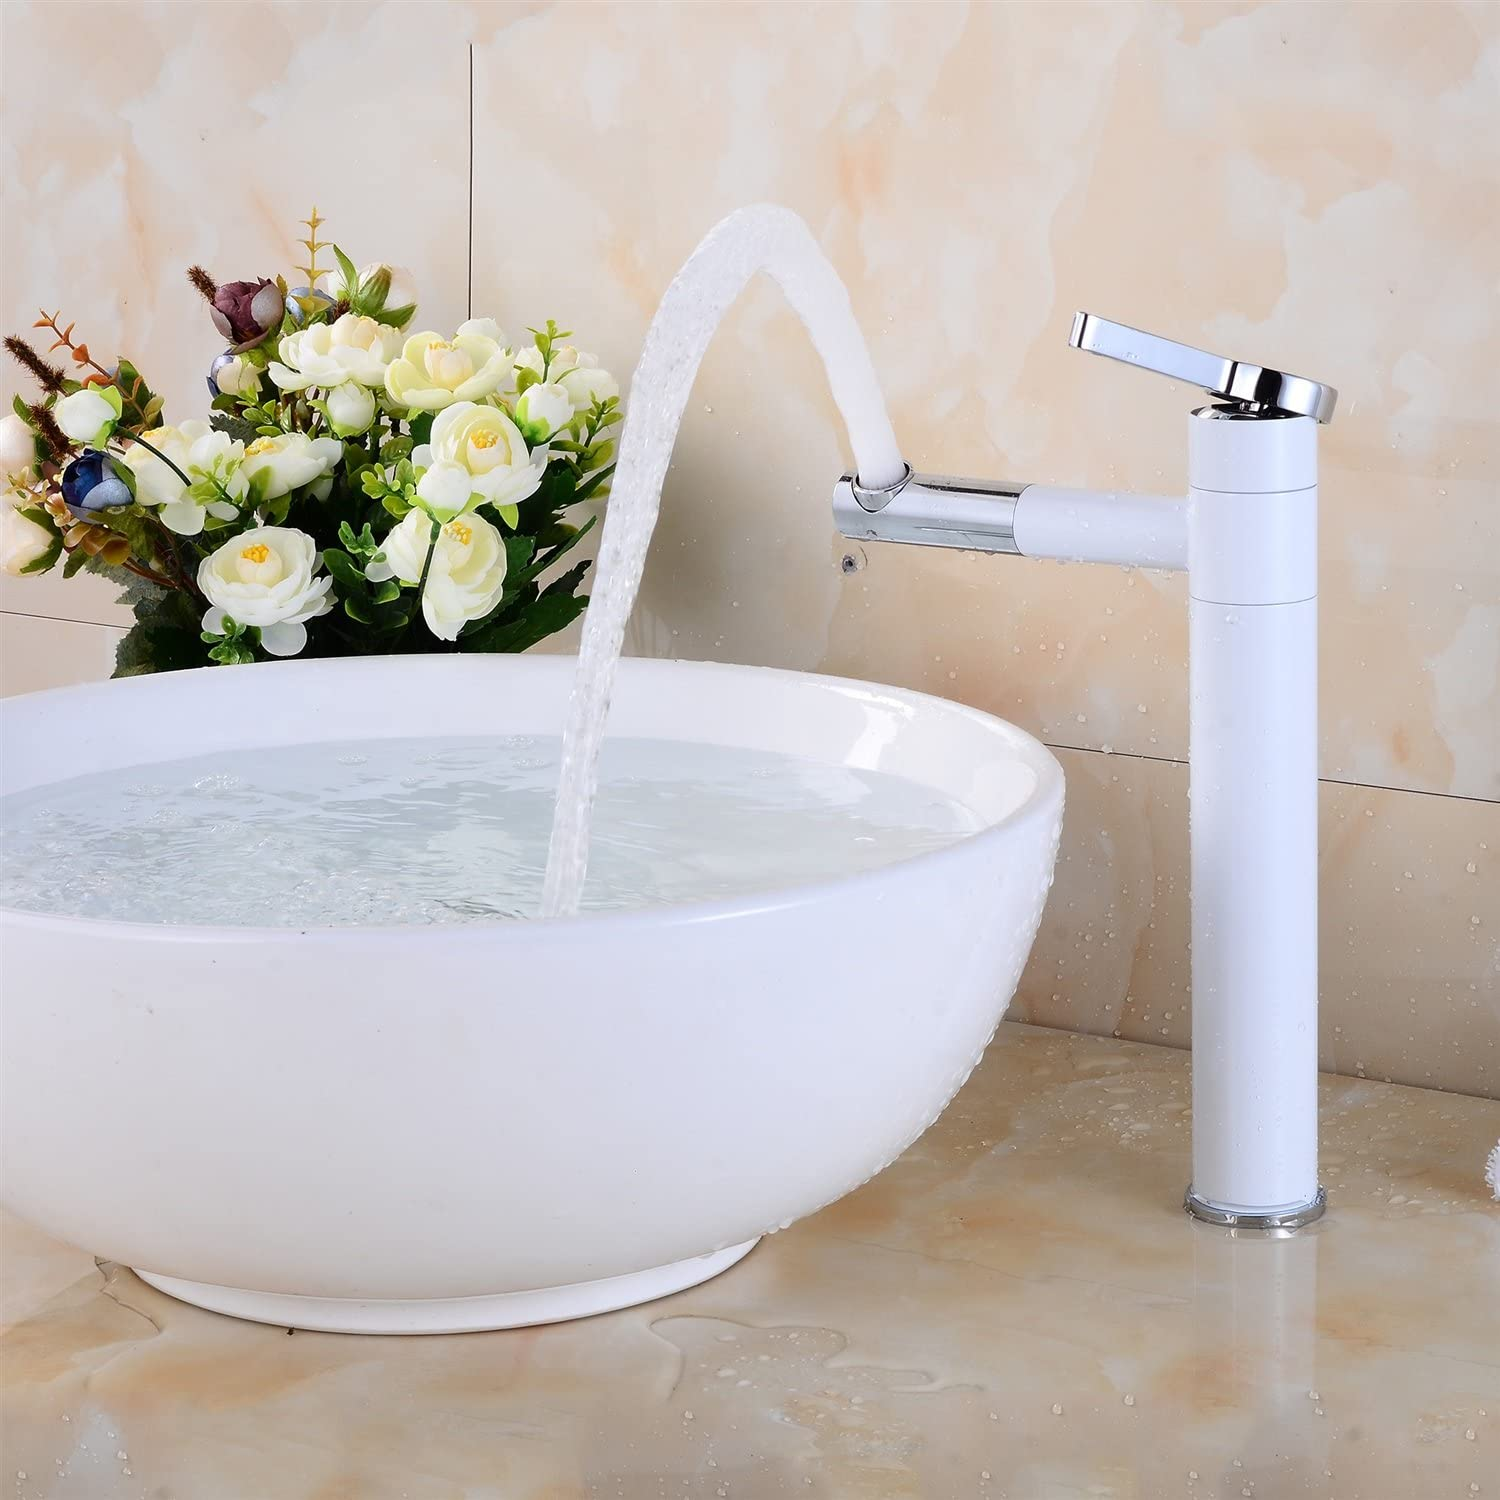 Bathroom Sink Taps 360° Swivel Basin Mixer Cold And Hot Water Mixer Bathroom Mixer Taps Brass Bathroom Sink Faucet Taps